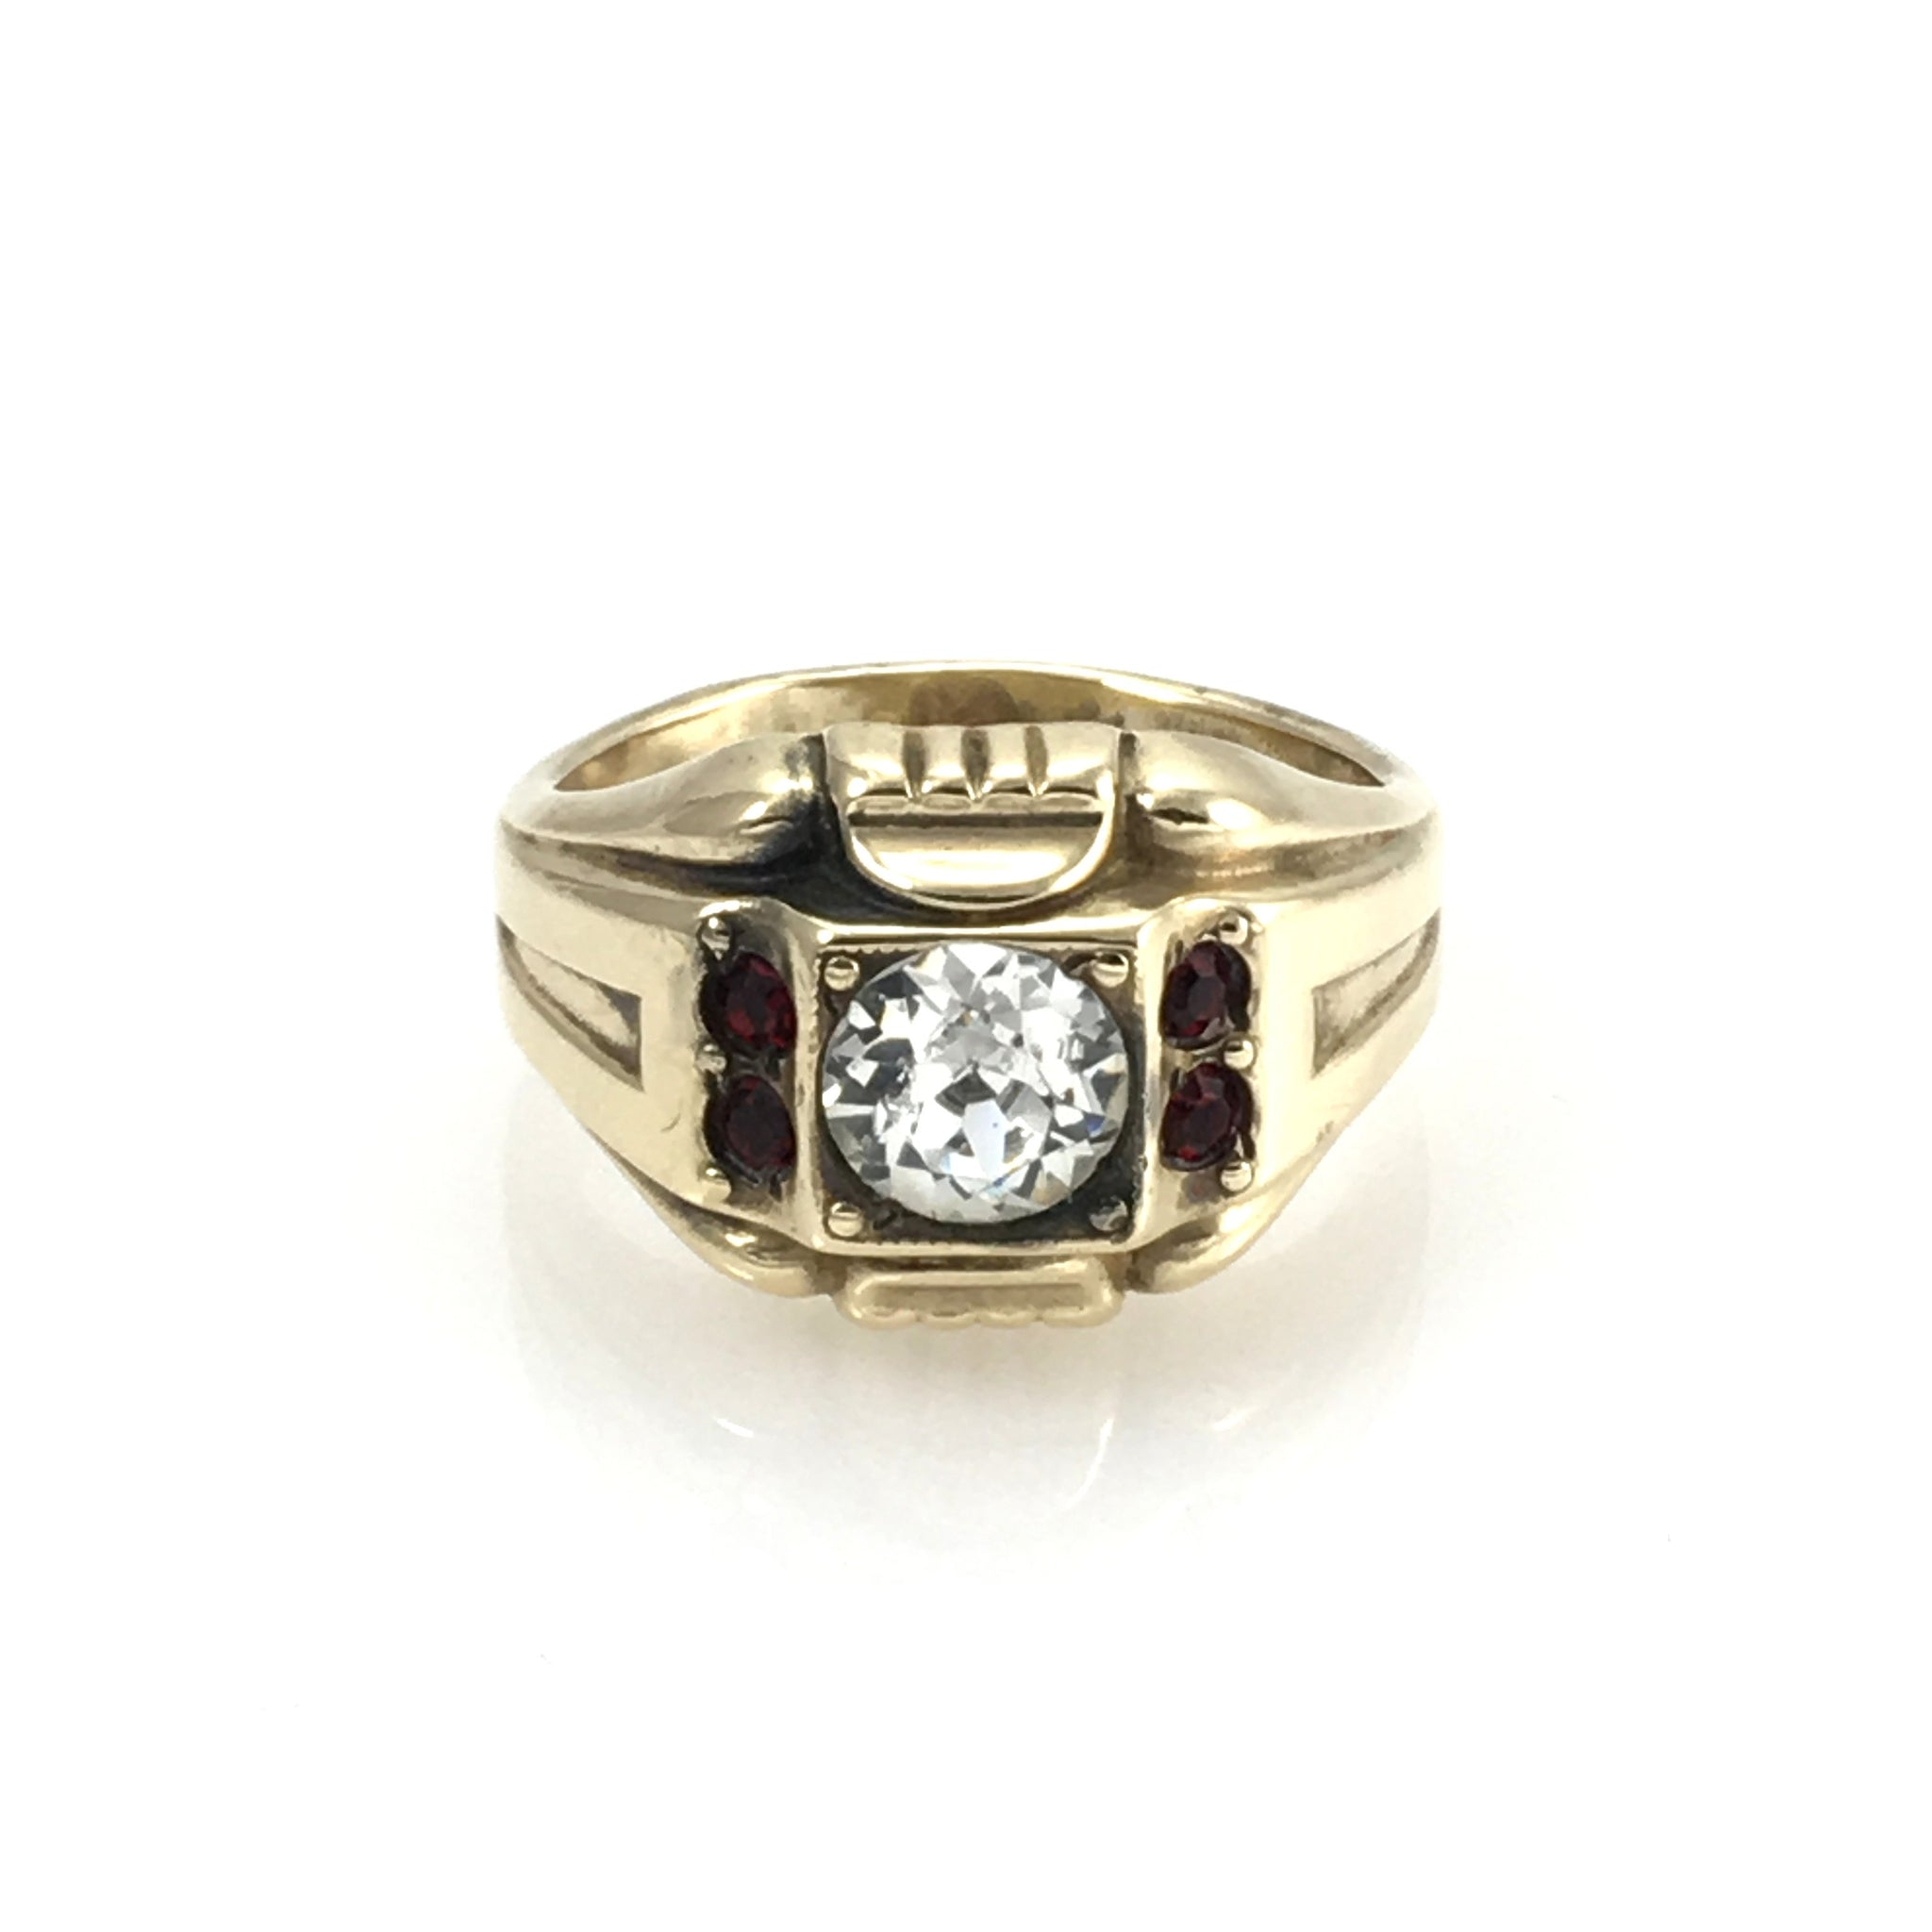 Vintage Men's Gold Filled Evening Ring